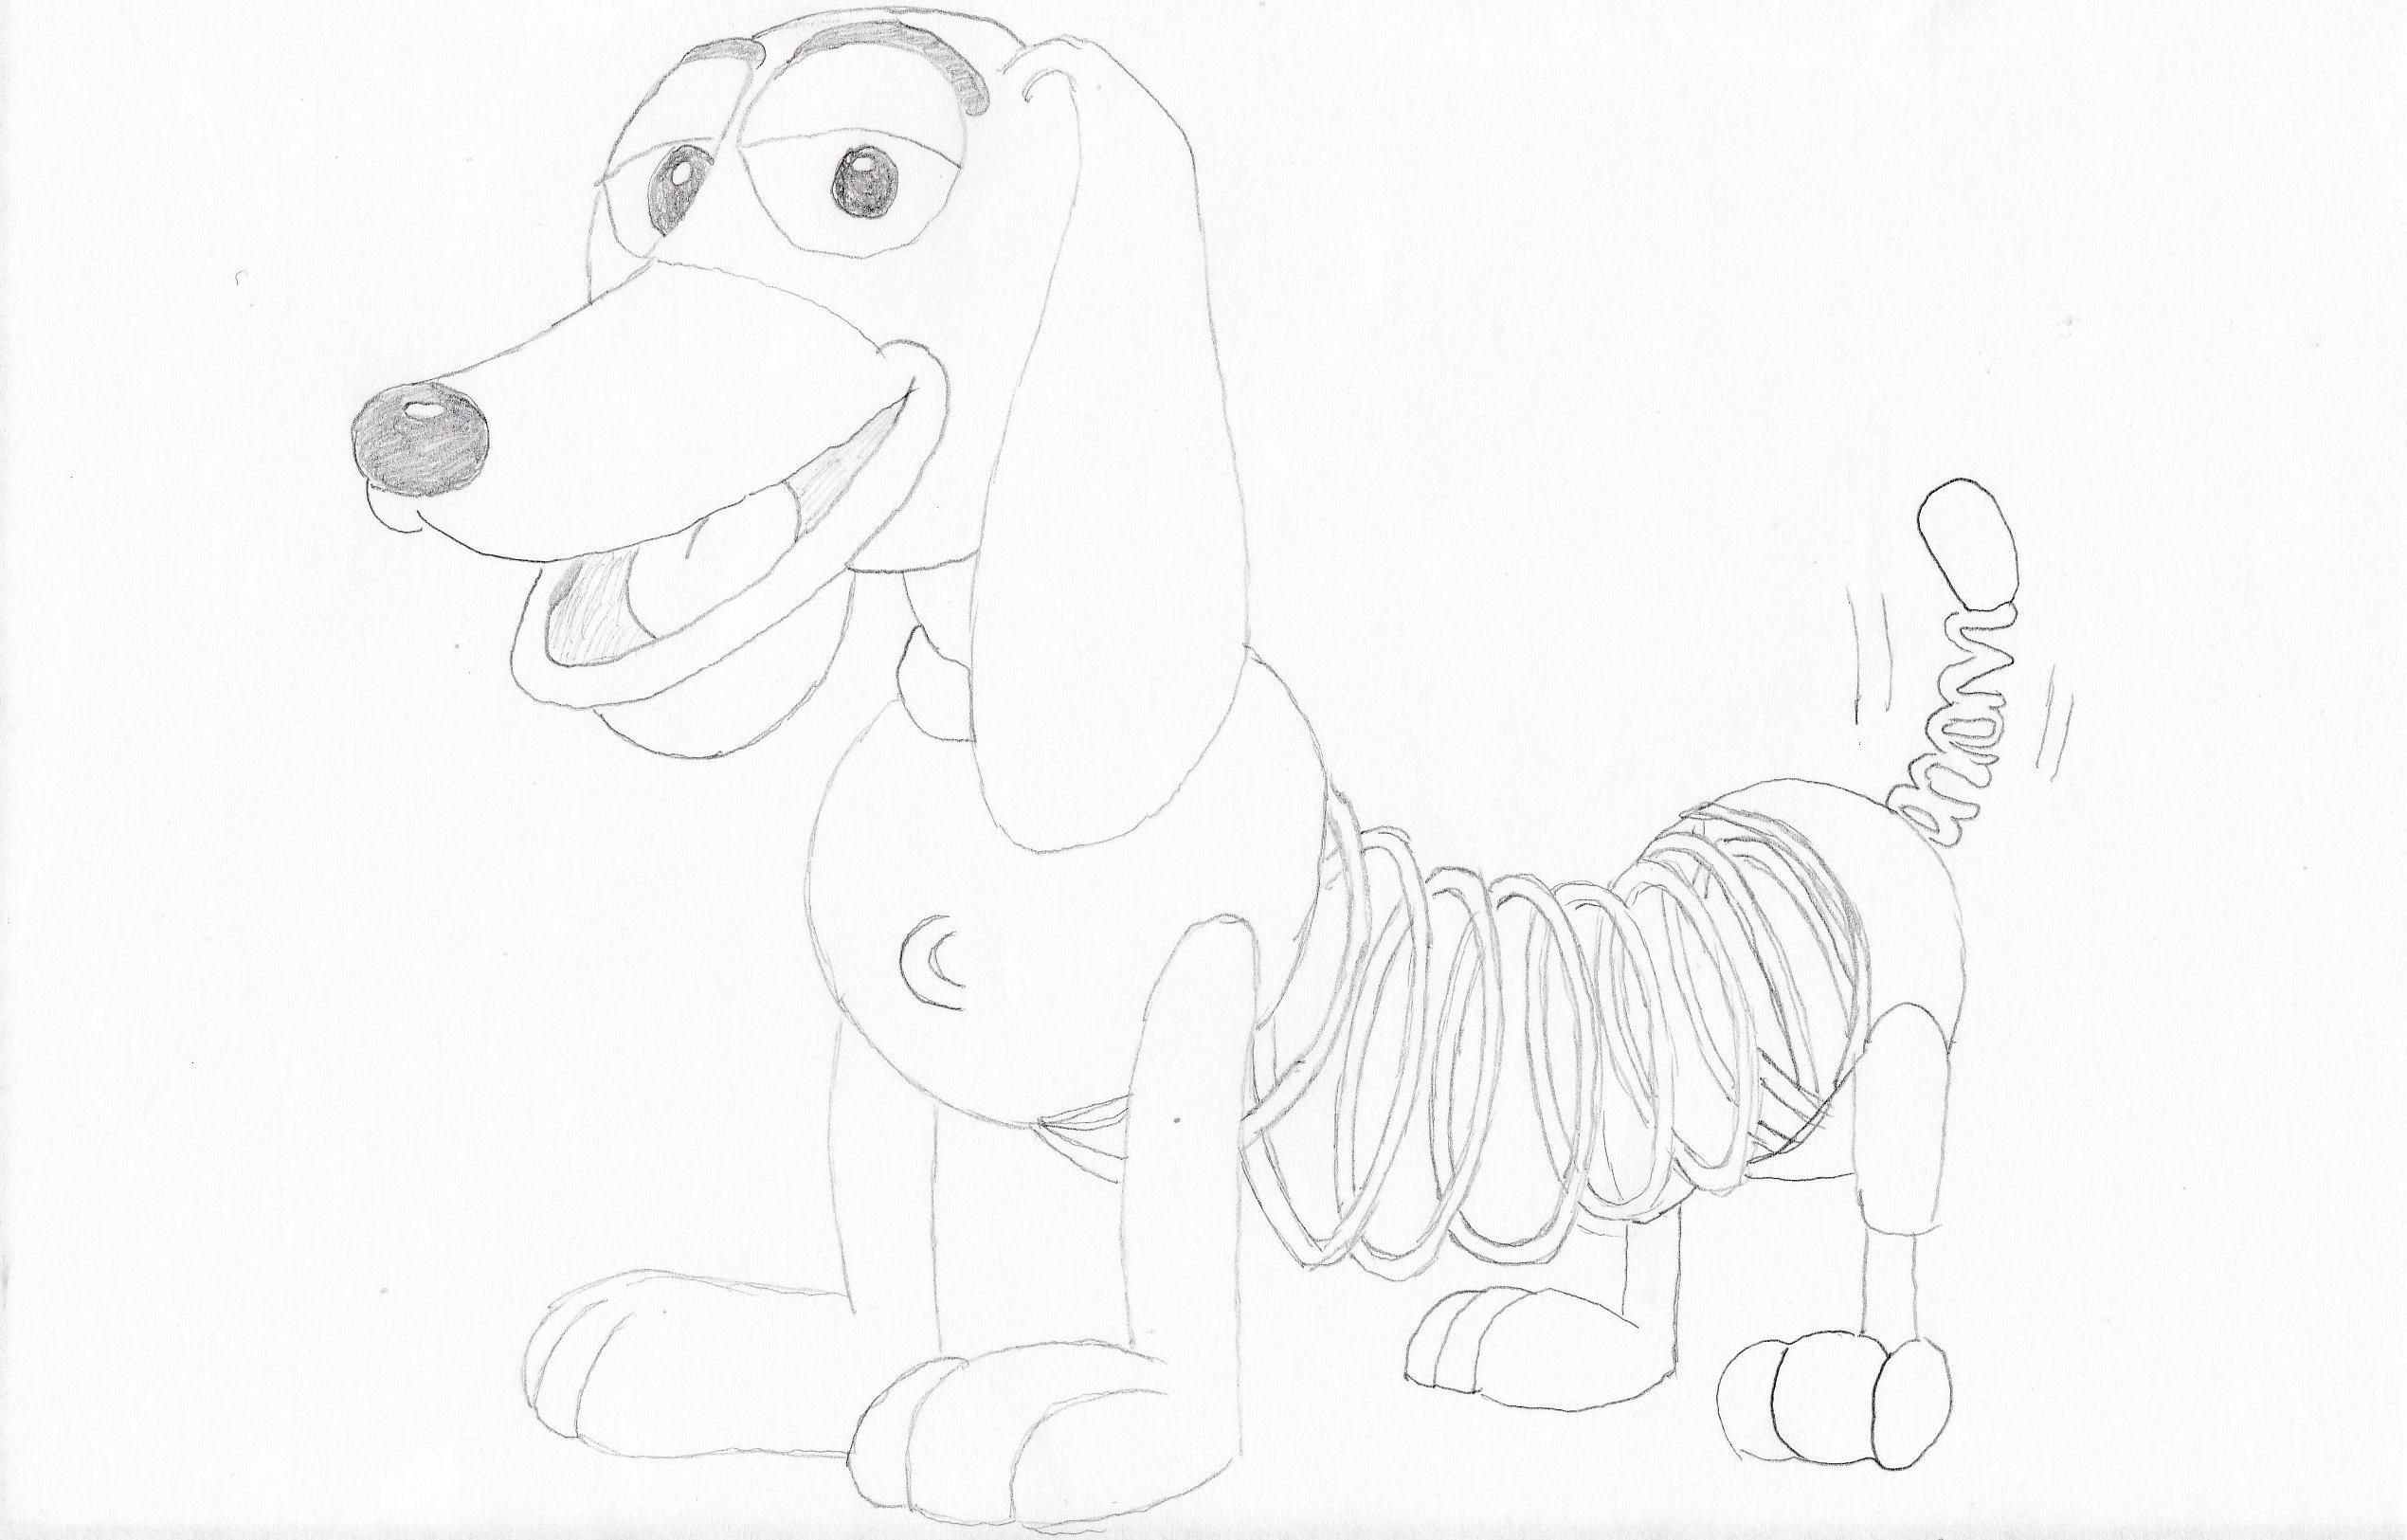 pictures of slinky dog from toy story slinky dog toy story dog svg slinky dog stencil toy story toy of dog story from slinky pictures